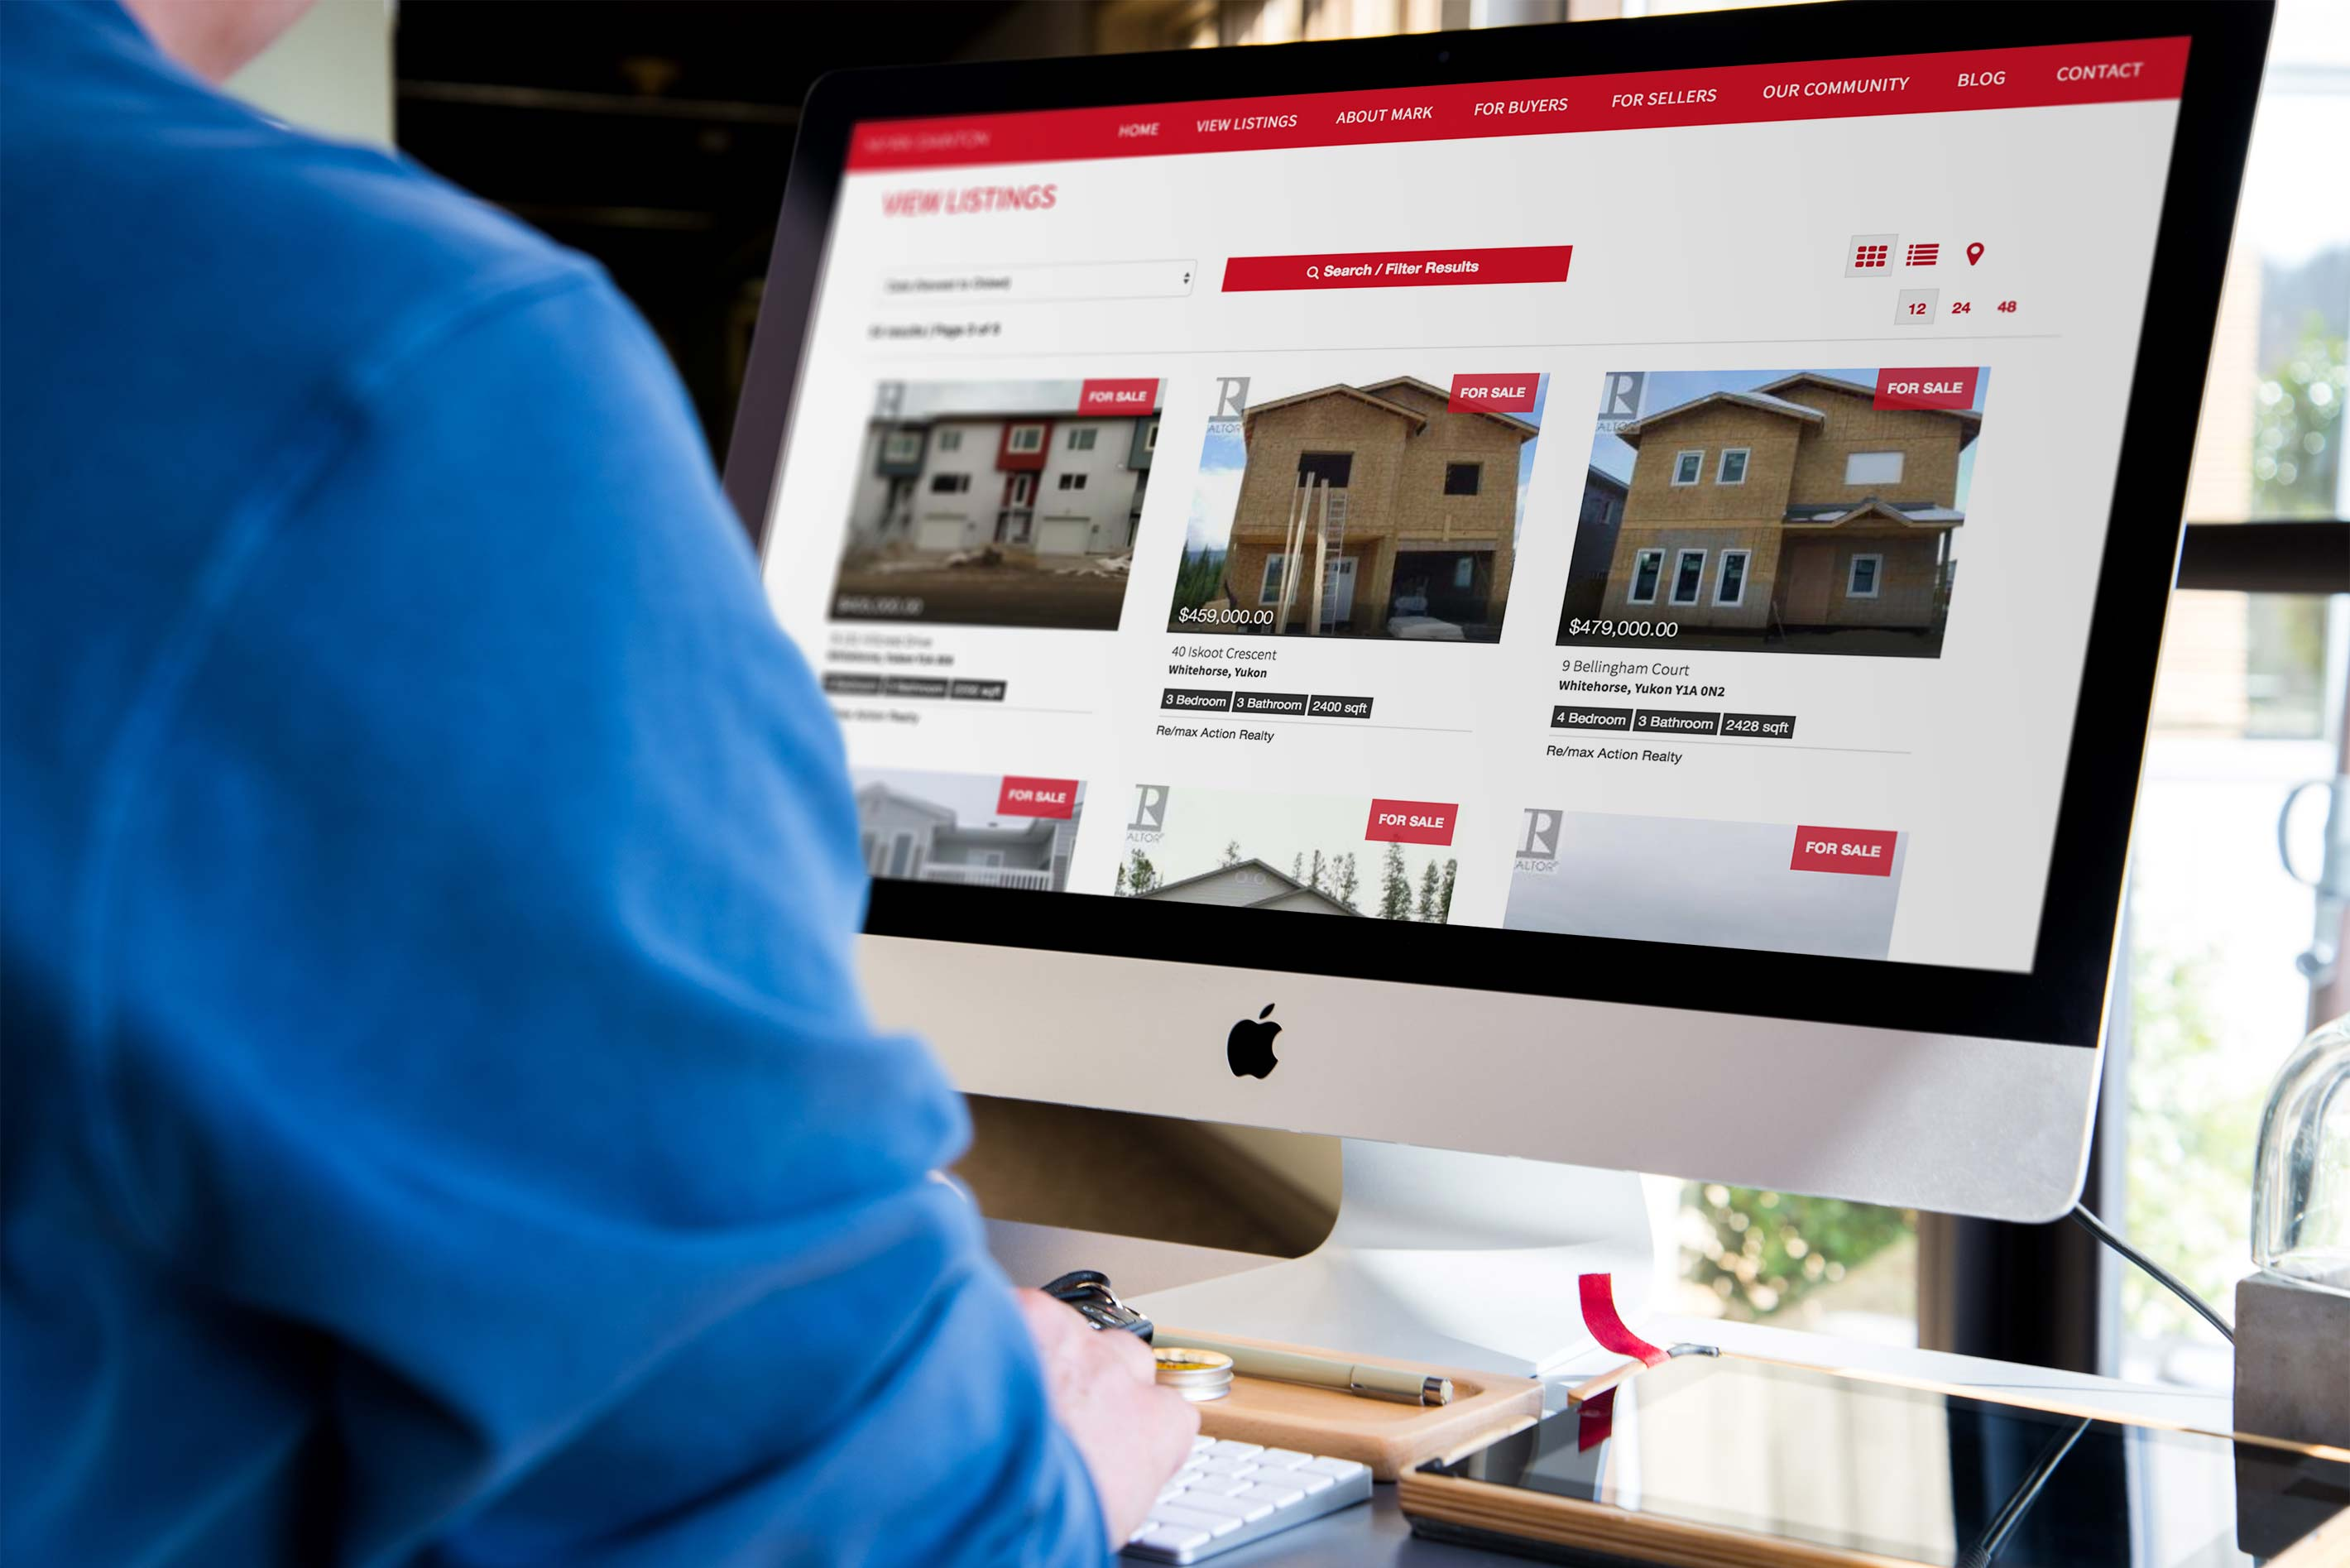 Mockup of website design with real estate listings